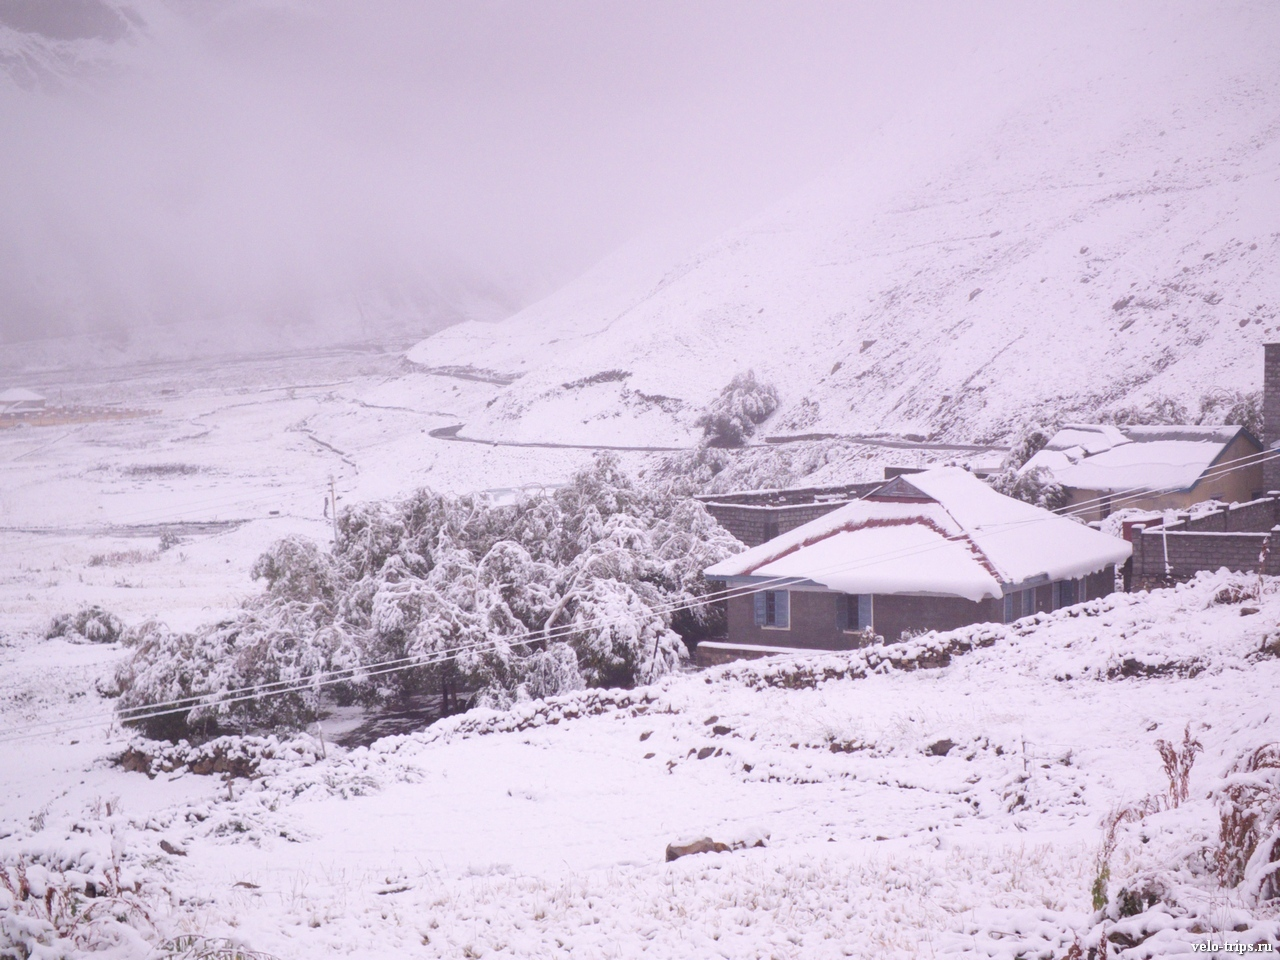 Morning view in Losar, Himalays